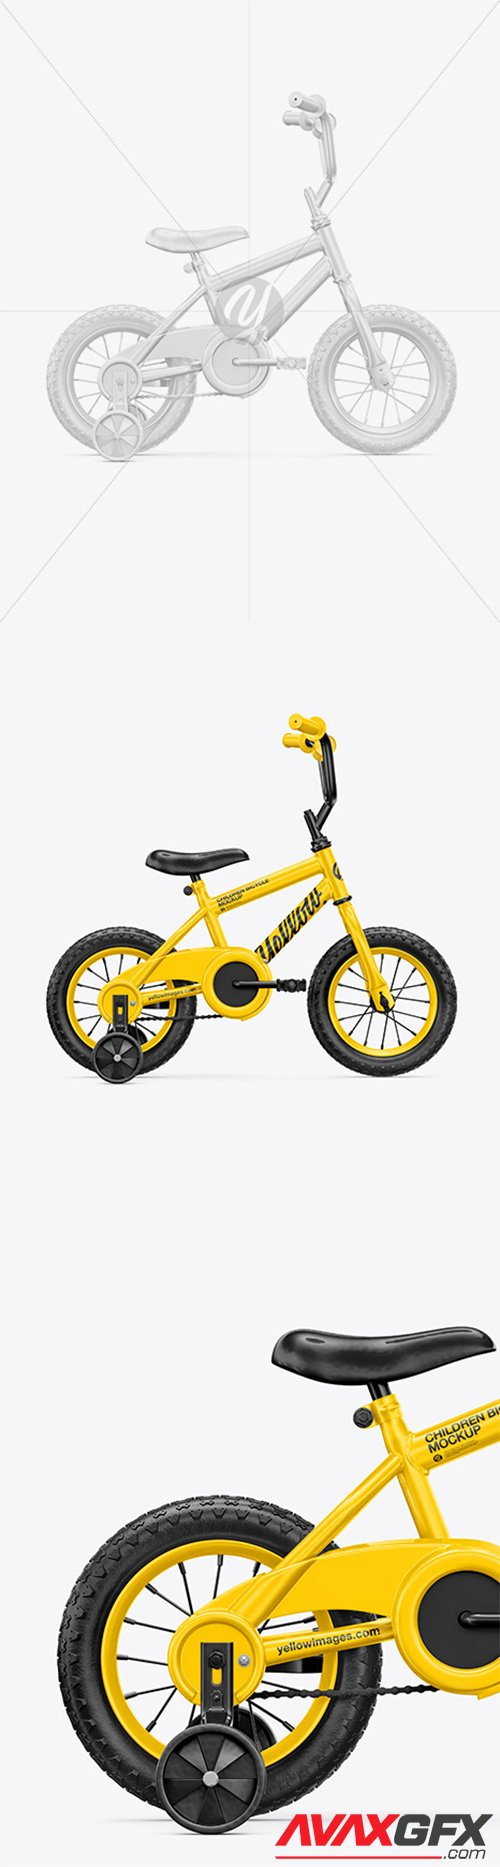 Children Bike Mockup - Right Side View 65588